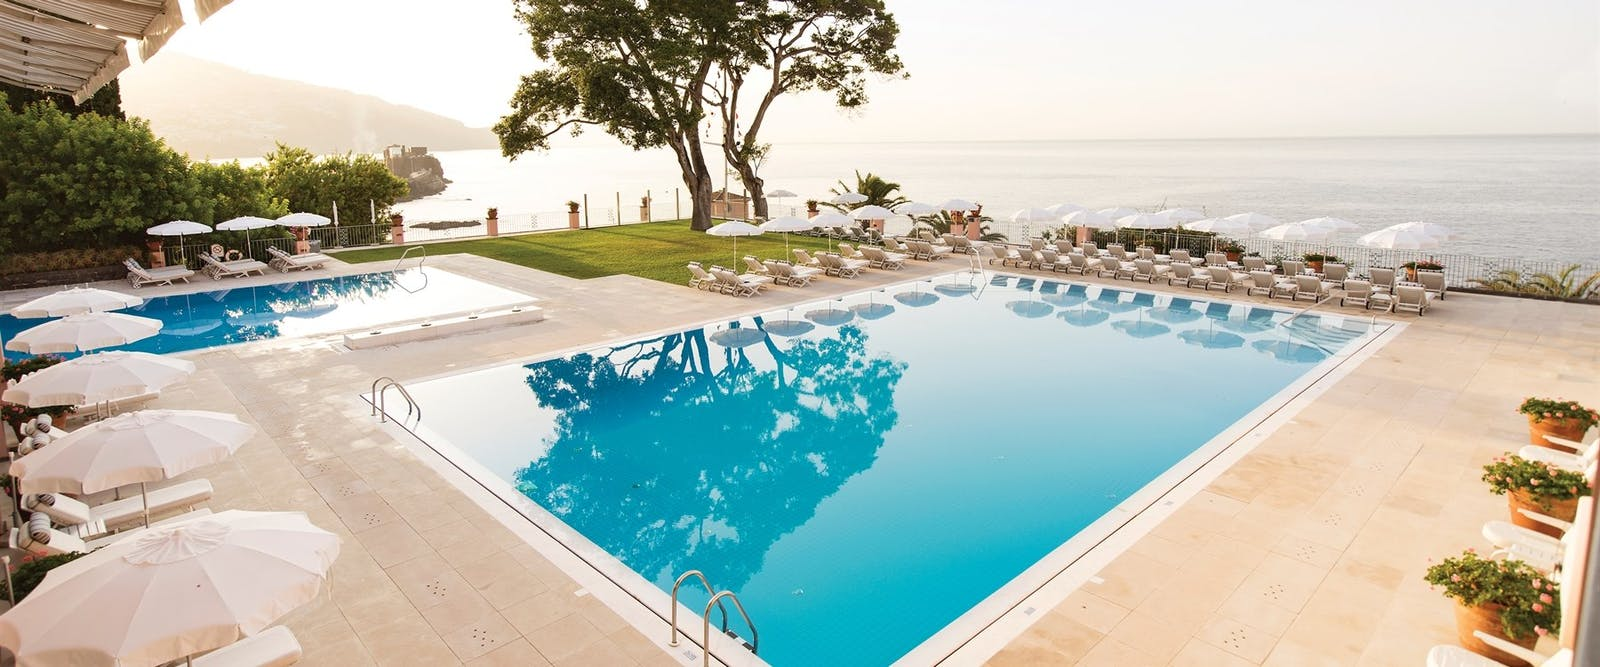 Outdoor Swimming Pool at Belmond Reids Palace, Madeira, Portugal